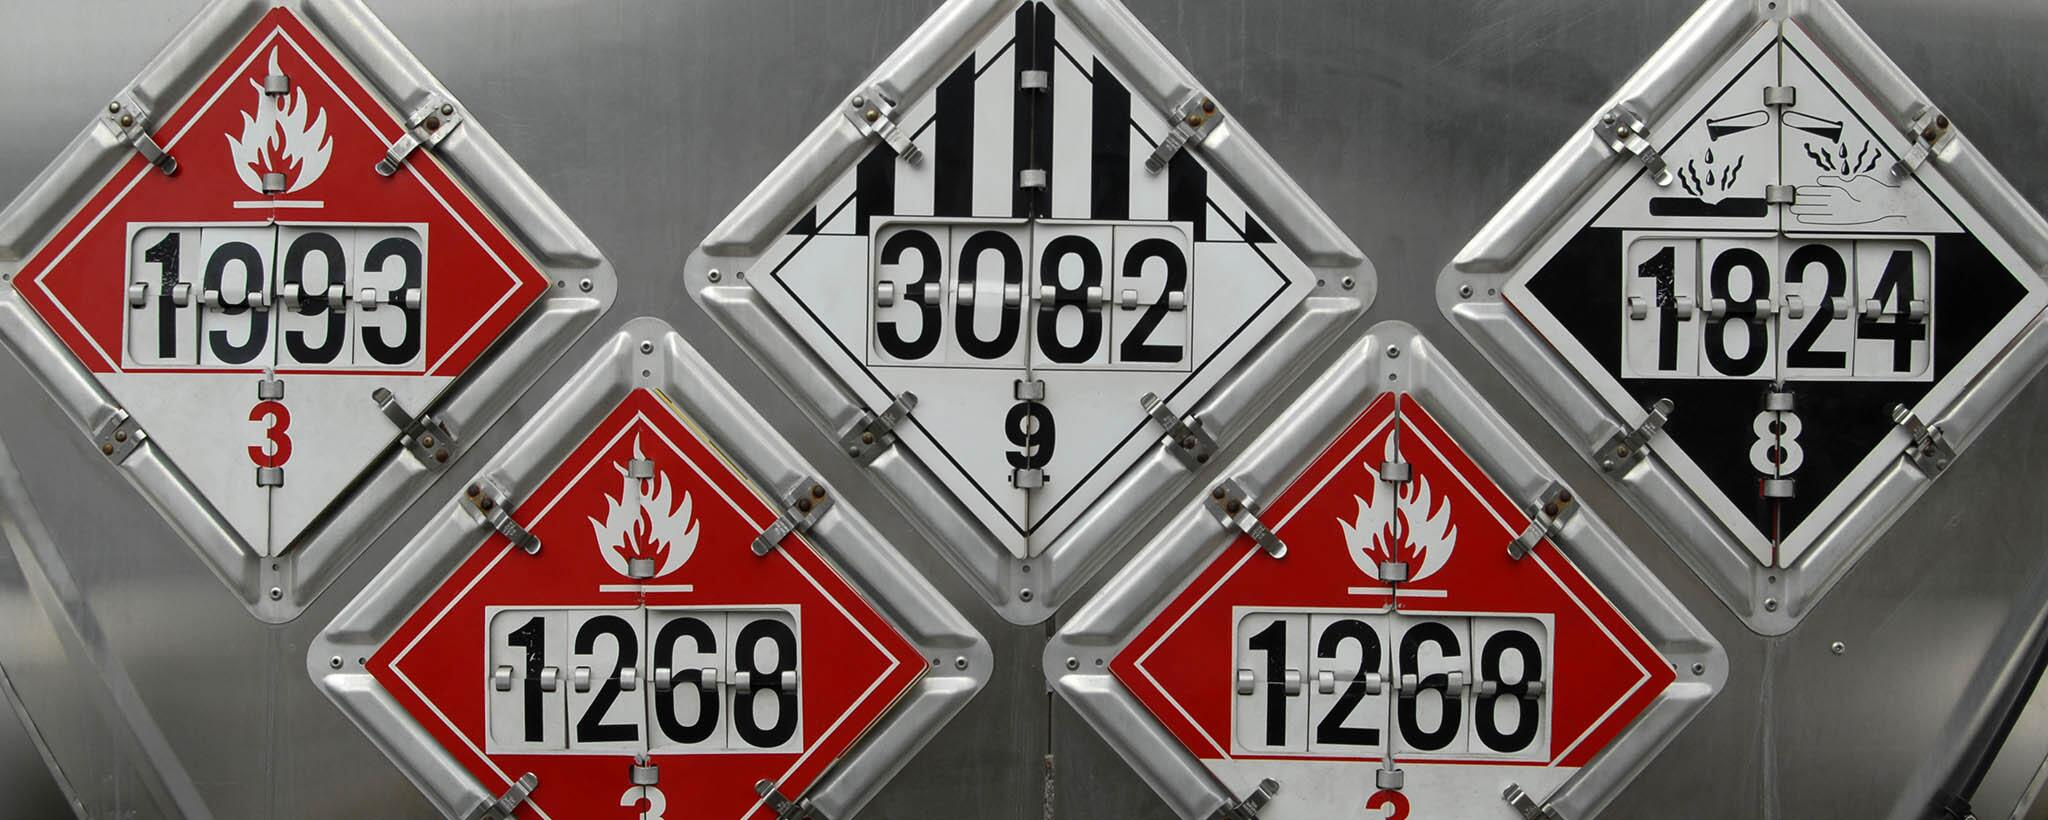 Image of HazMat signs